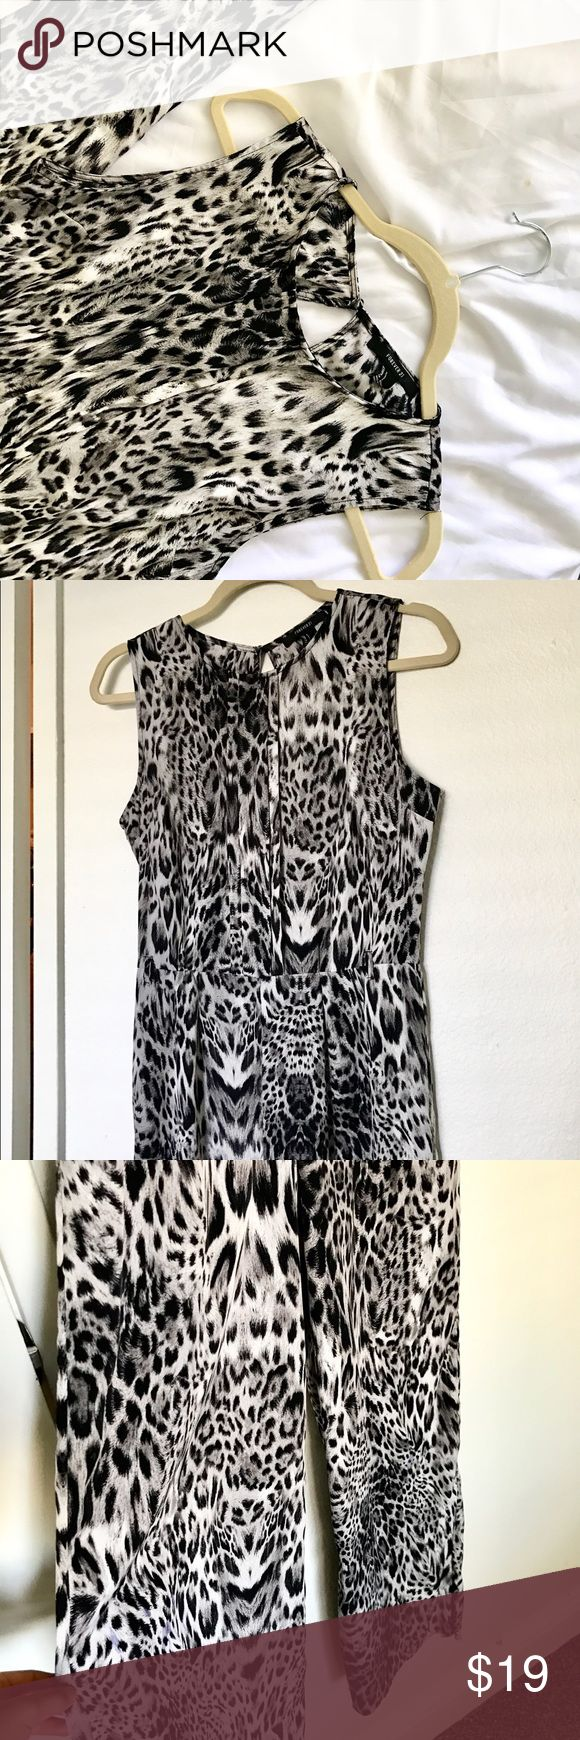 Wide leg jumpsuit #animalprint Animal print jumpsuit open back Dresses